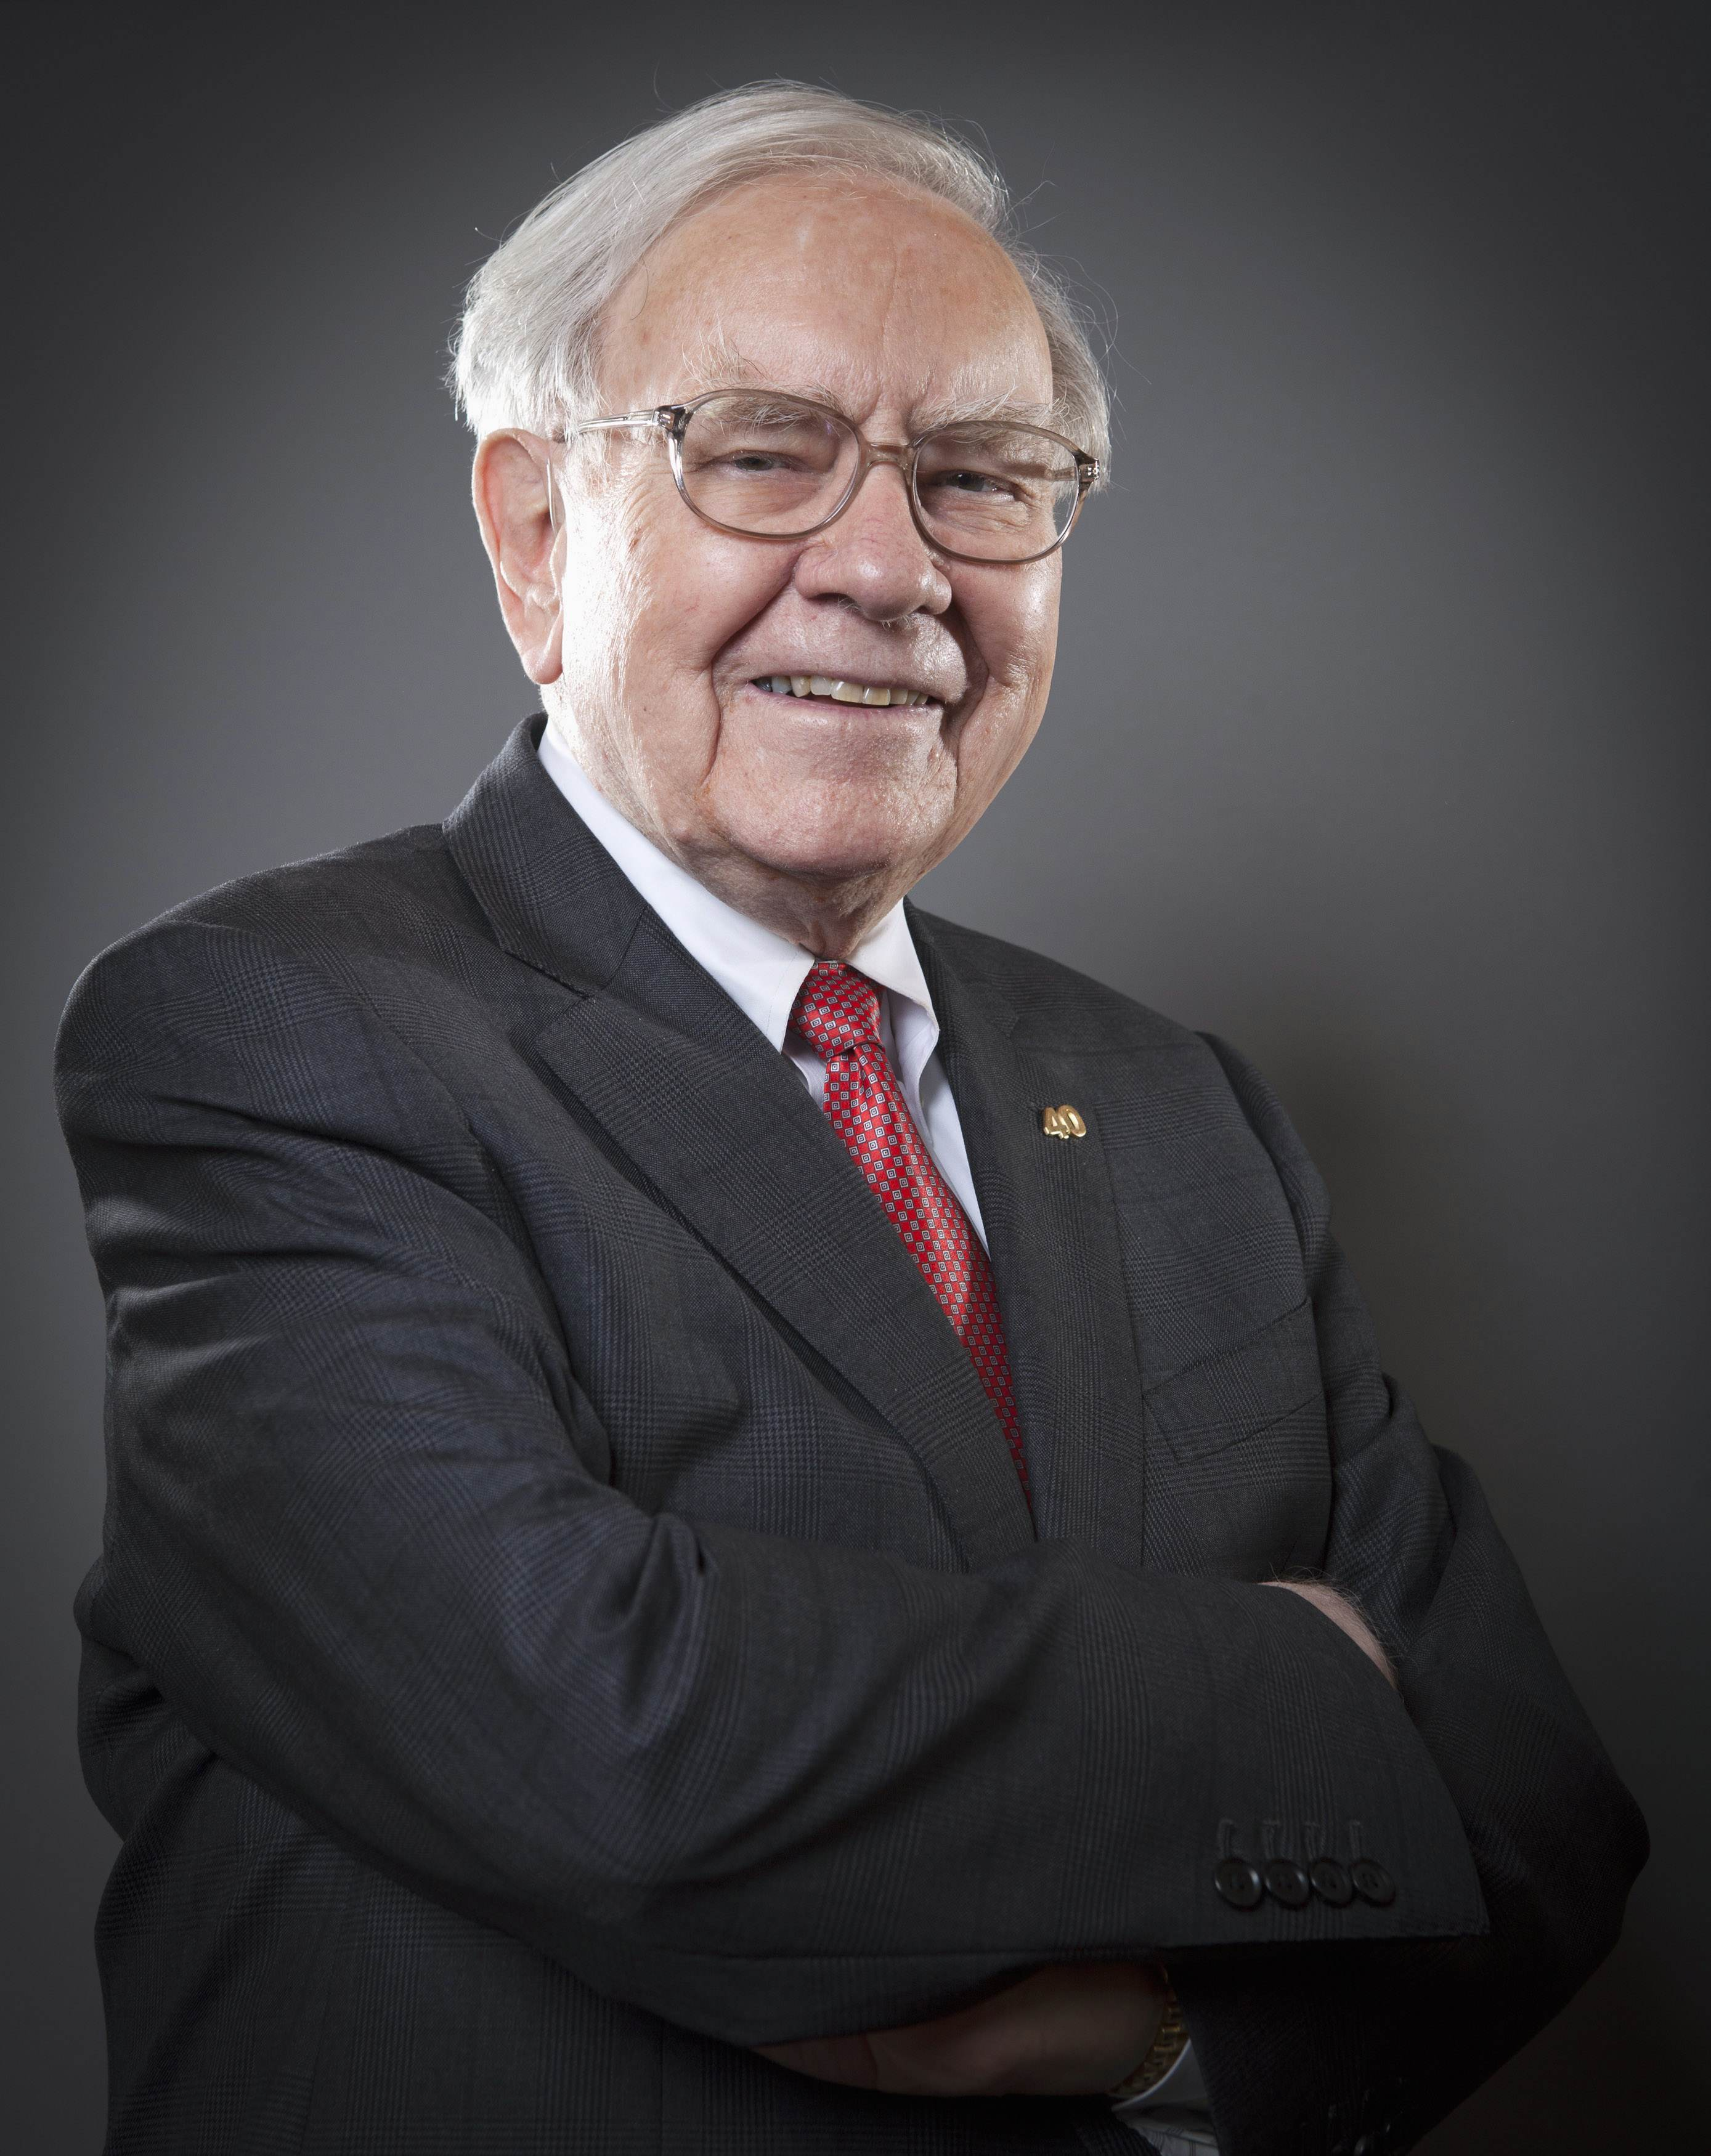 Warren Buffett, Chairman of the Board and CEO of Berkshire Hathaway, poses for a portrait in New York October 22, 2013. REUTERS/Carlo Allegri (UNITED STATES - Tags: BUSINESS HEADSHOT)